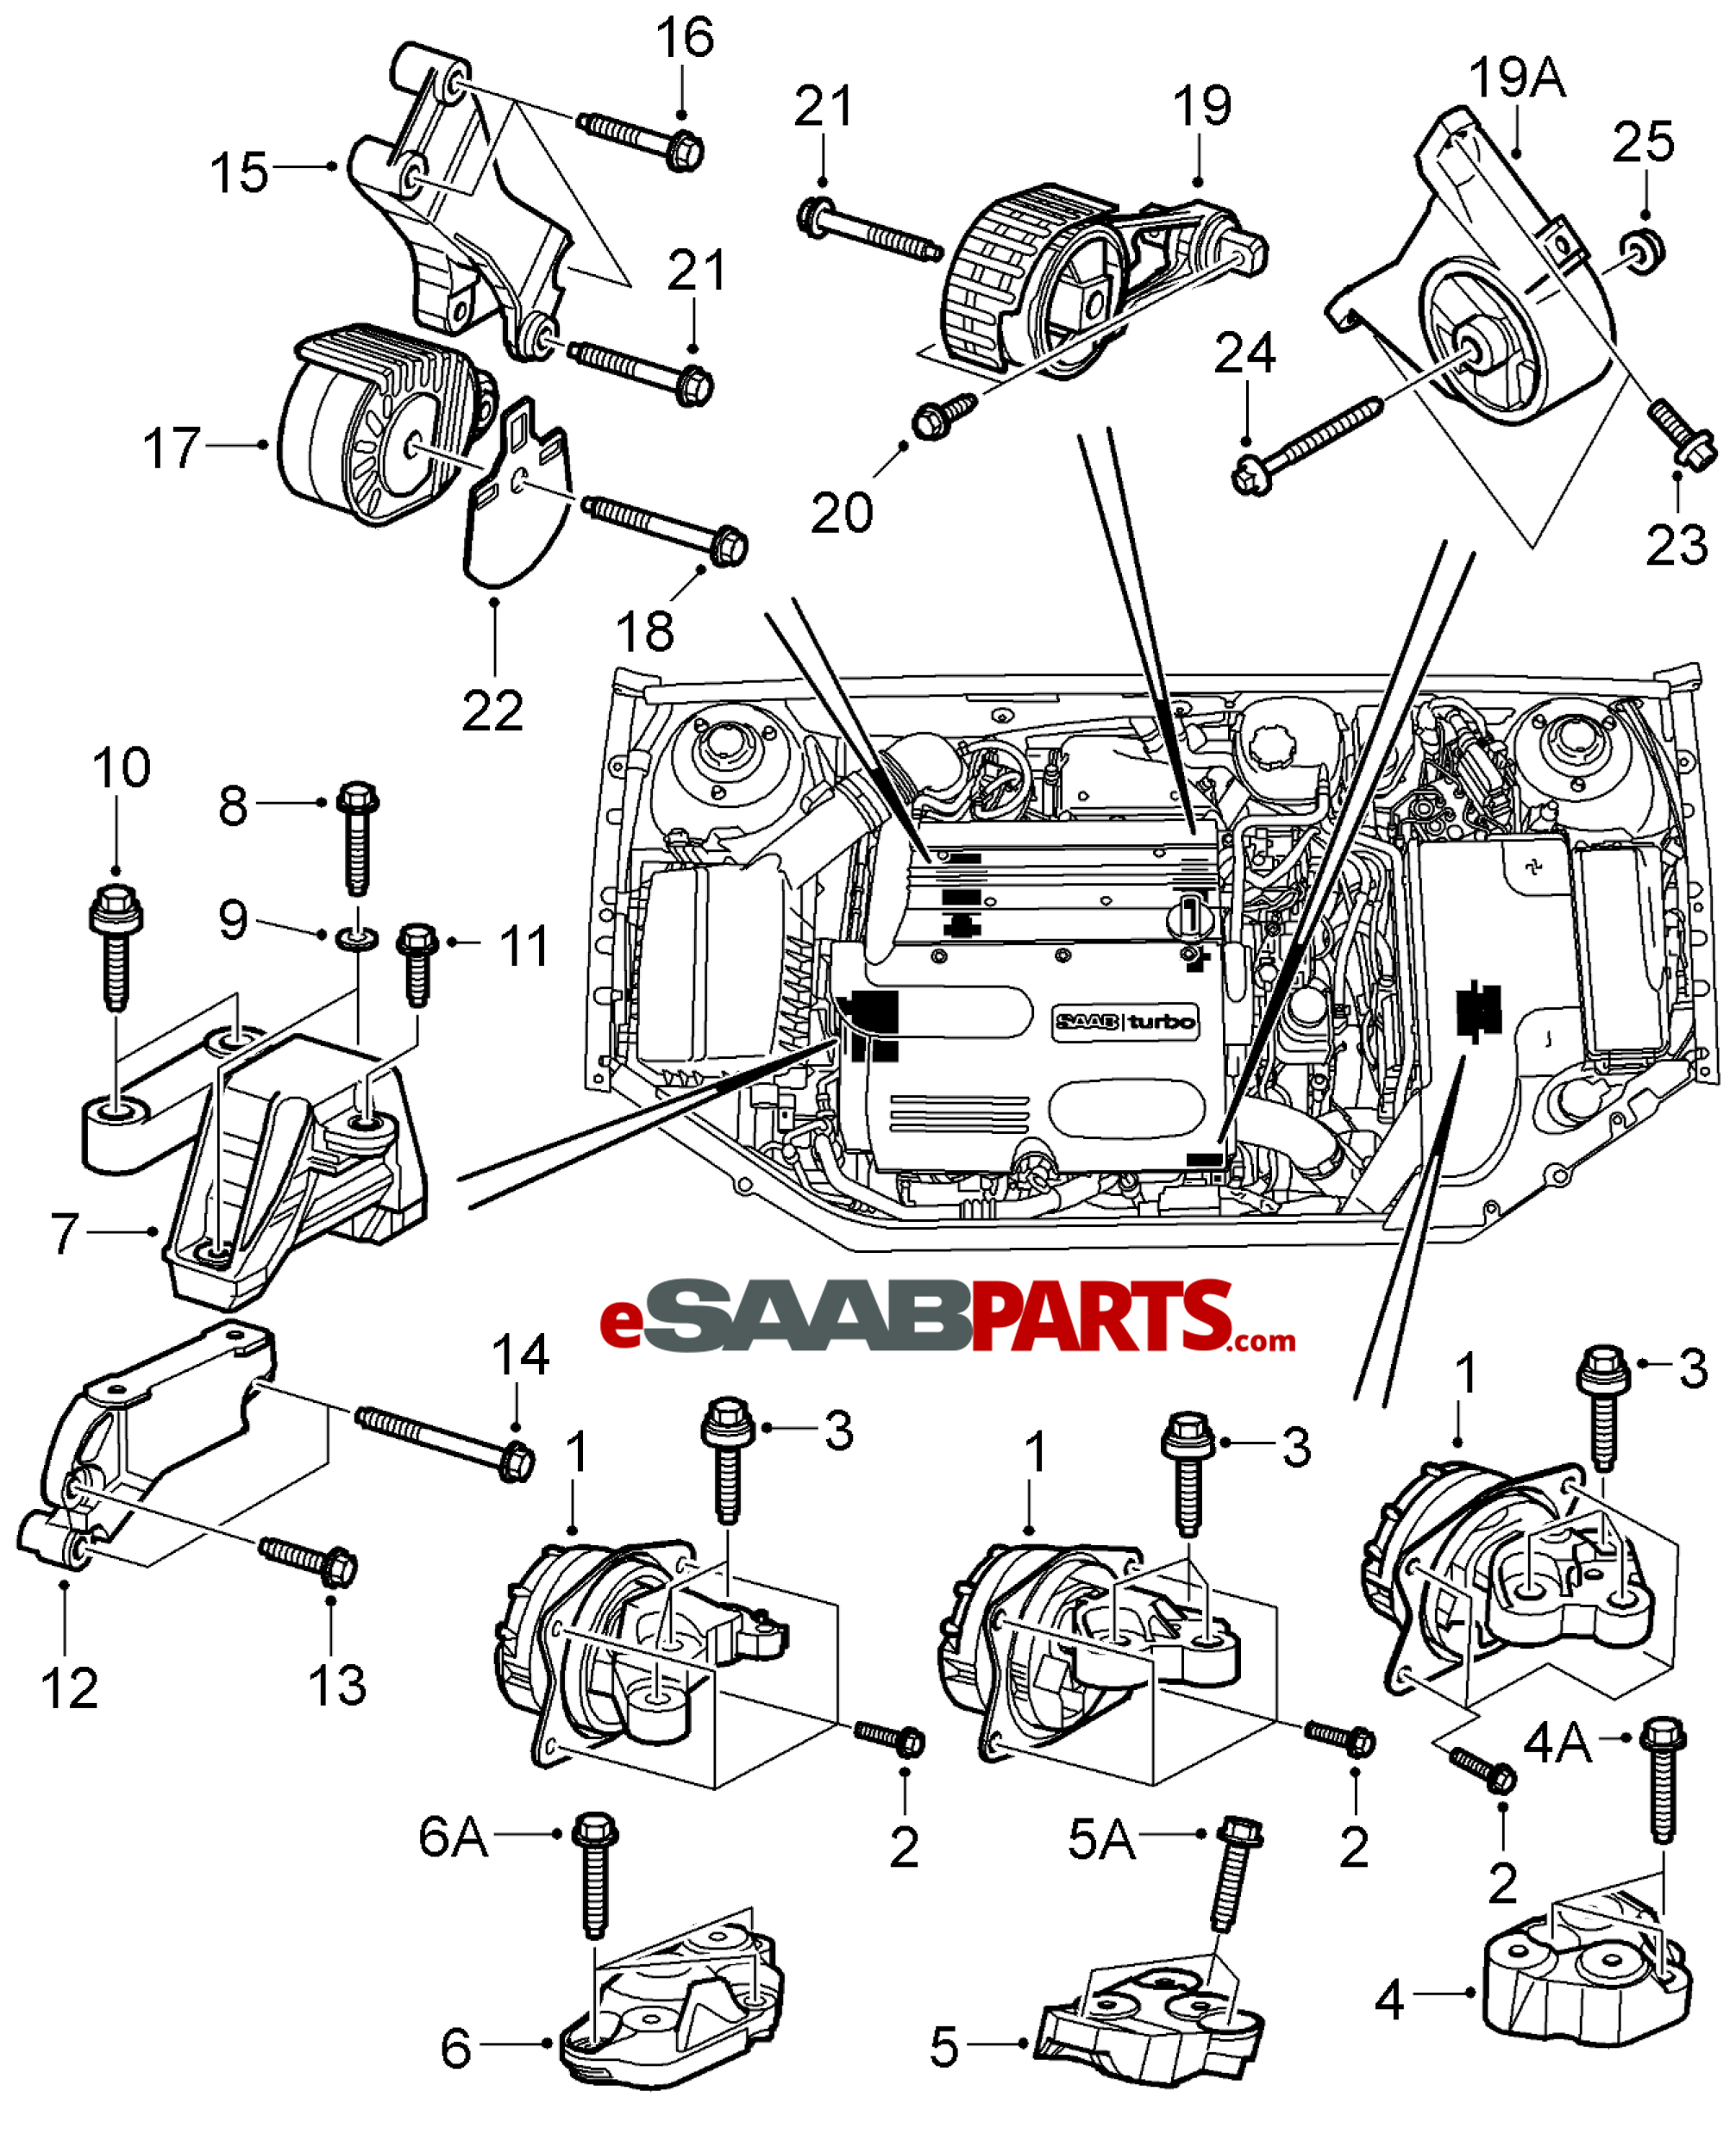 13191542 saab engine mount lh hydro bushing automatic rh esaabparts com 1993 Saab 900 Engine Diagram Saab 9 3 Parts Diagram